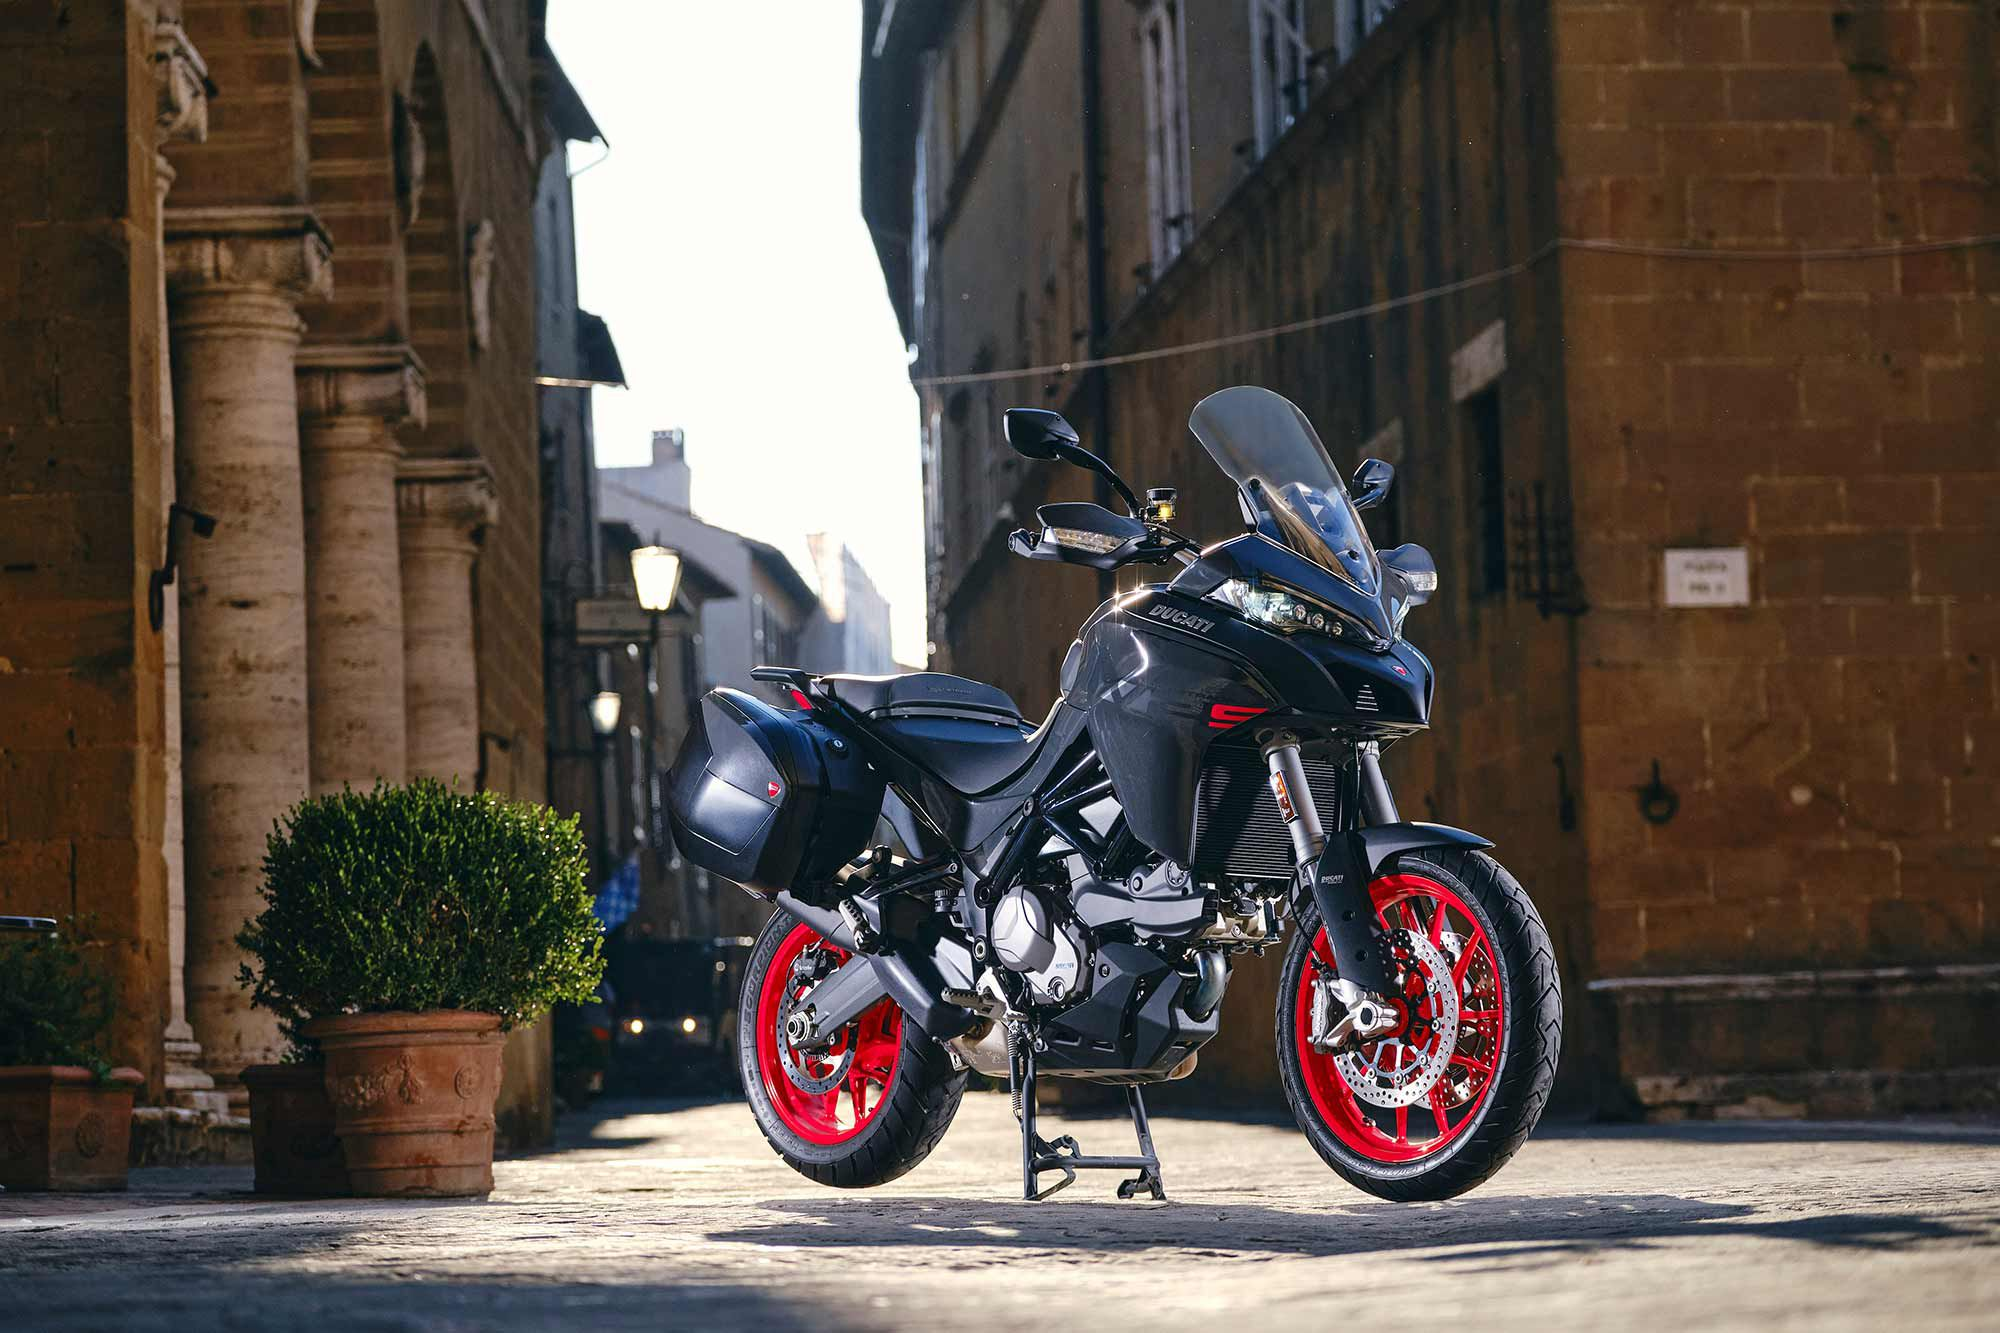 Designers refined the lines of the Multistrada from tip to tail.